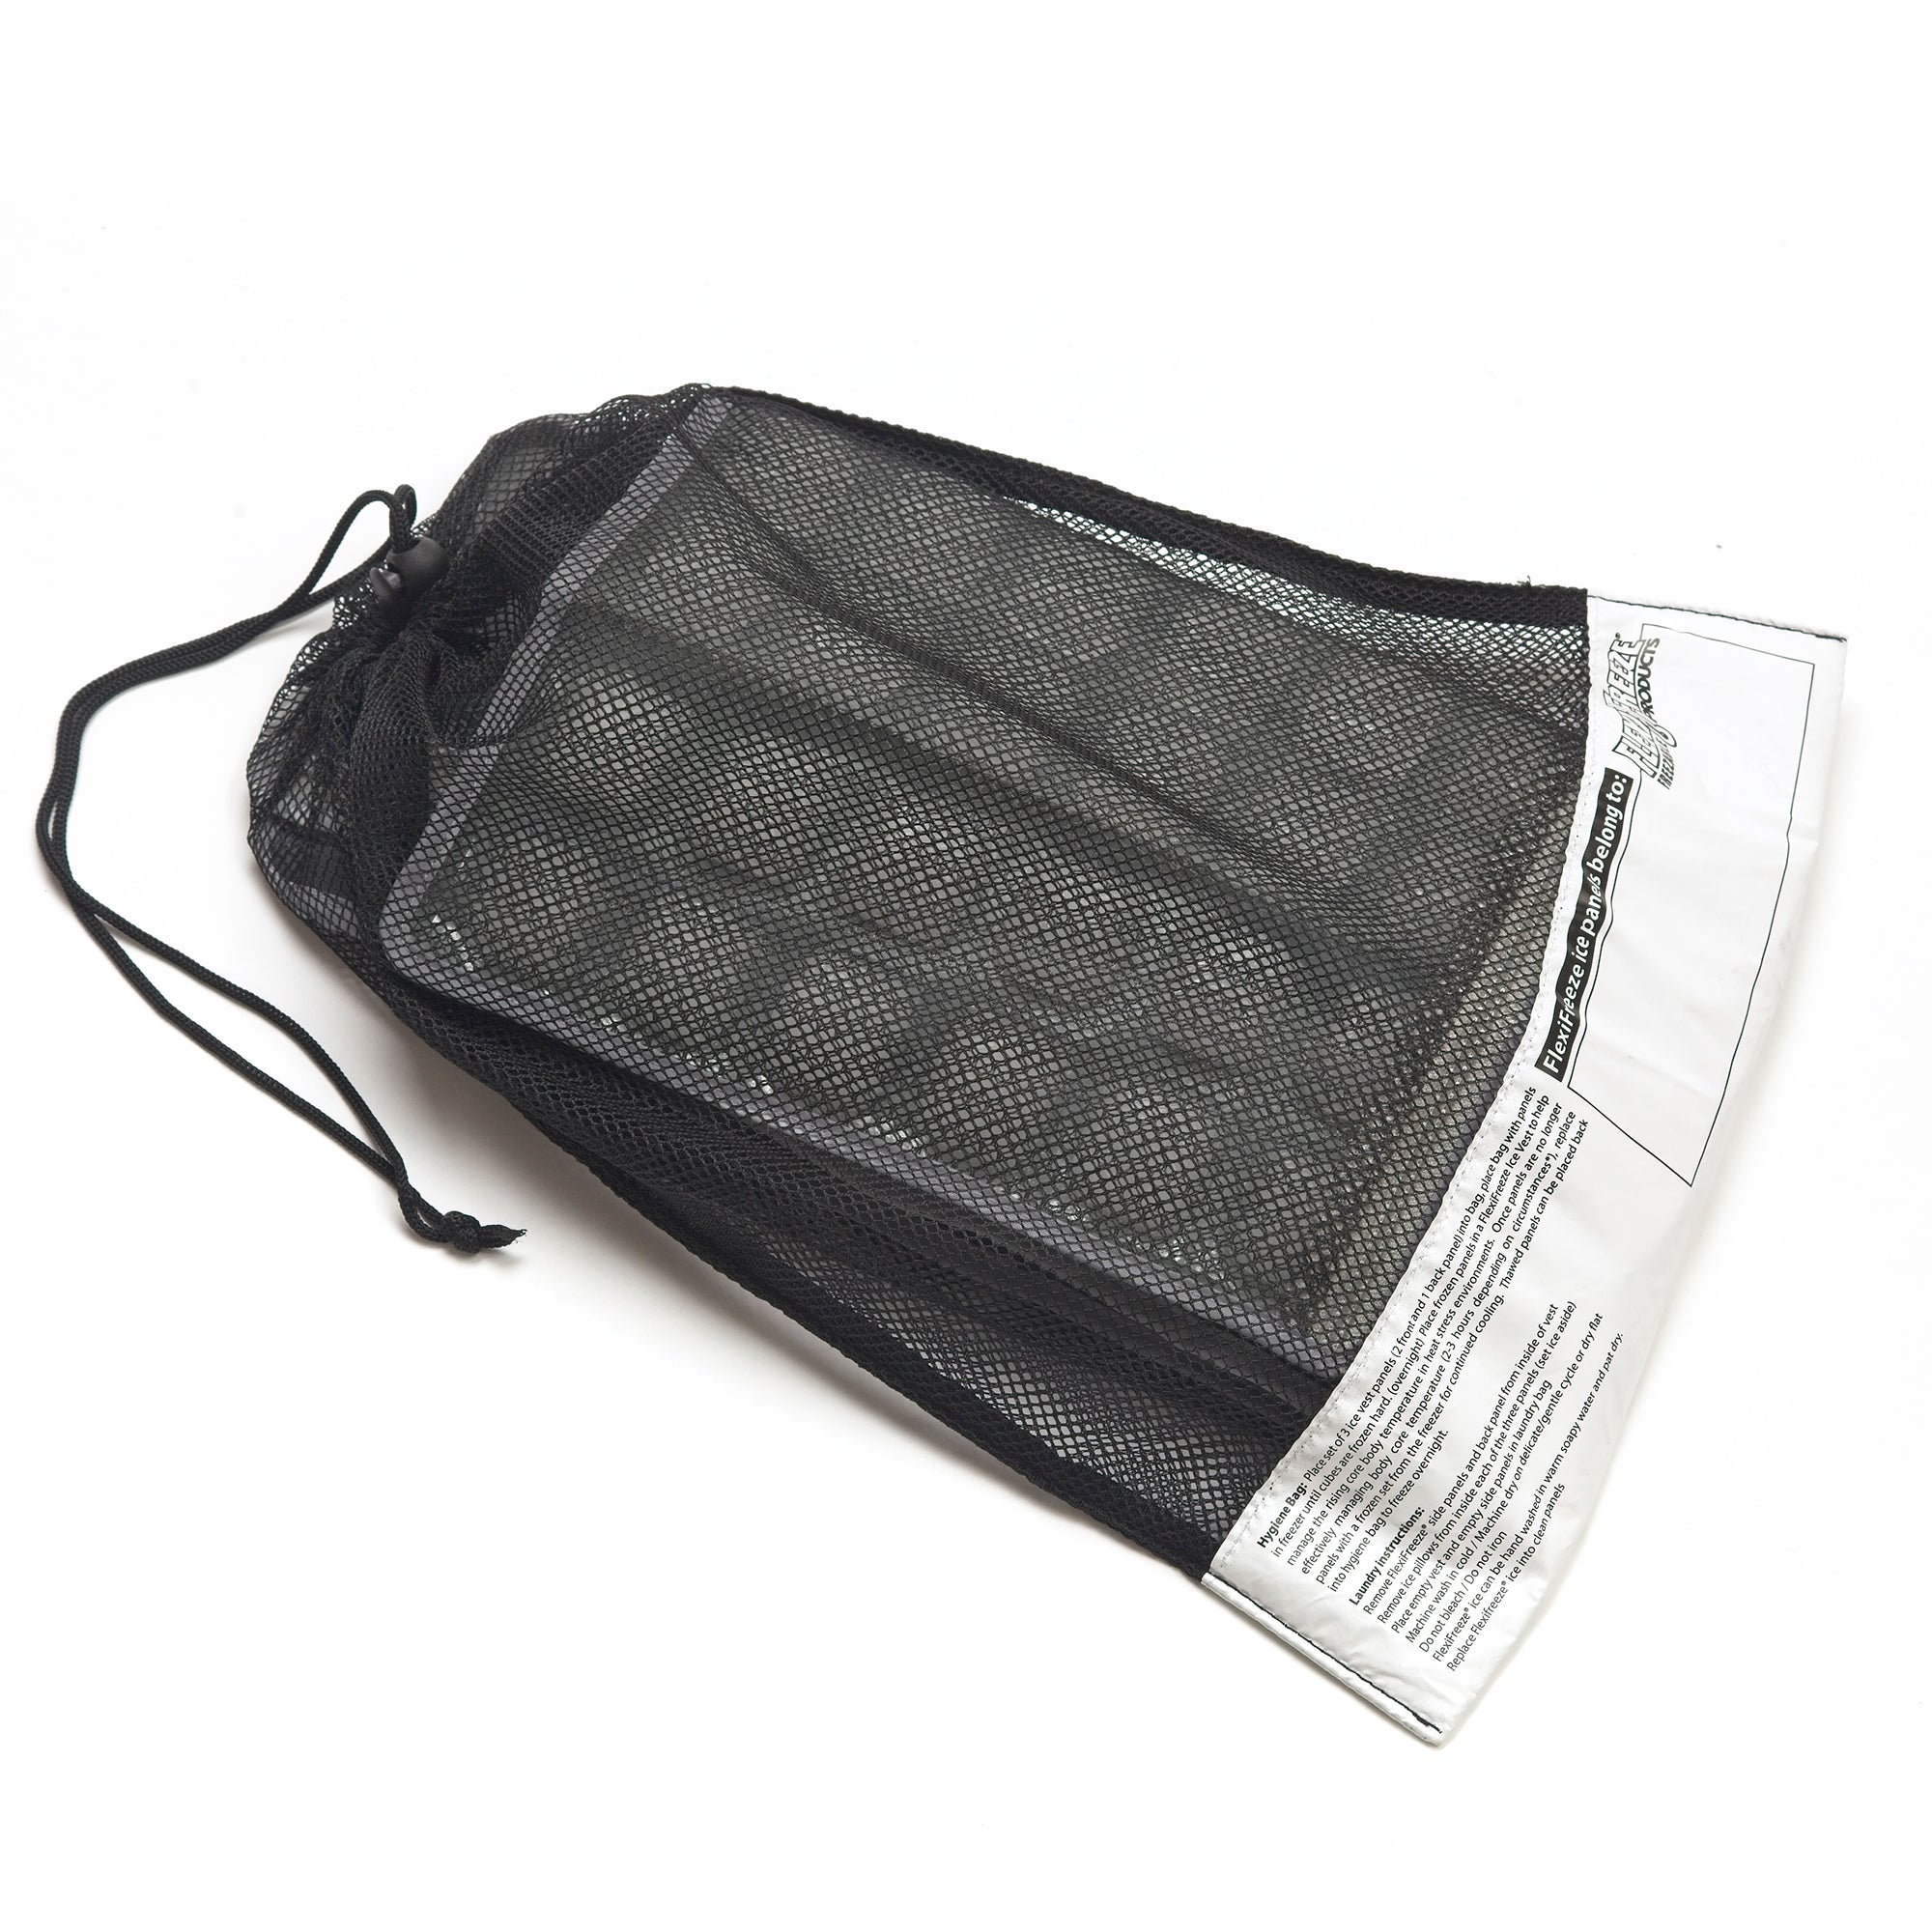 FlexiFreeze Professional Series Ice Vest Replacement Panels